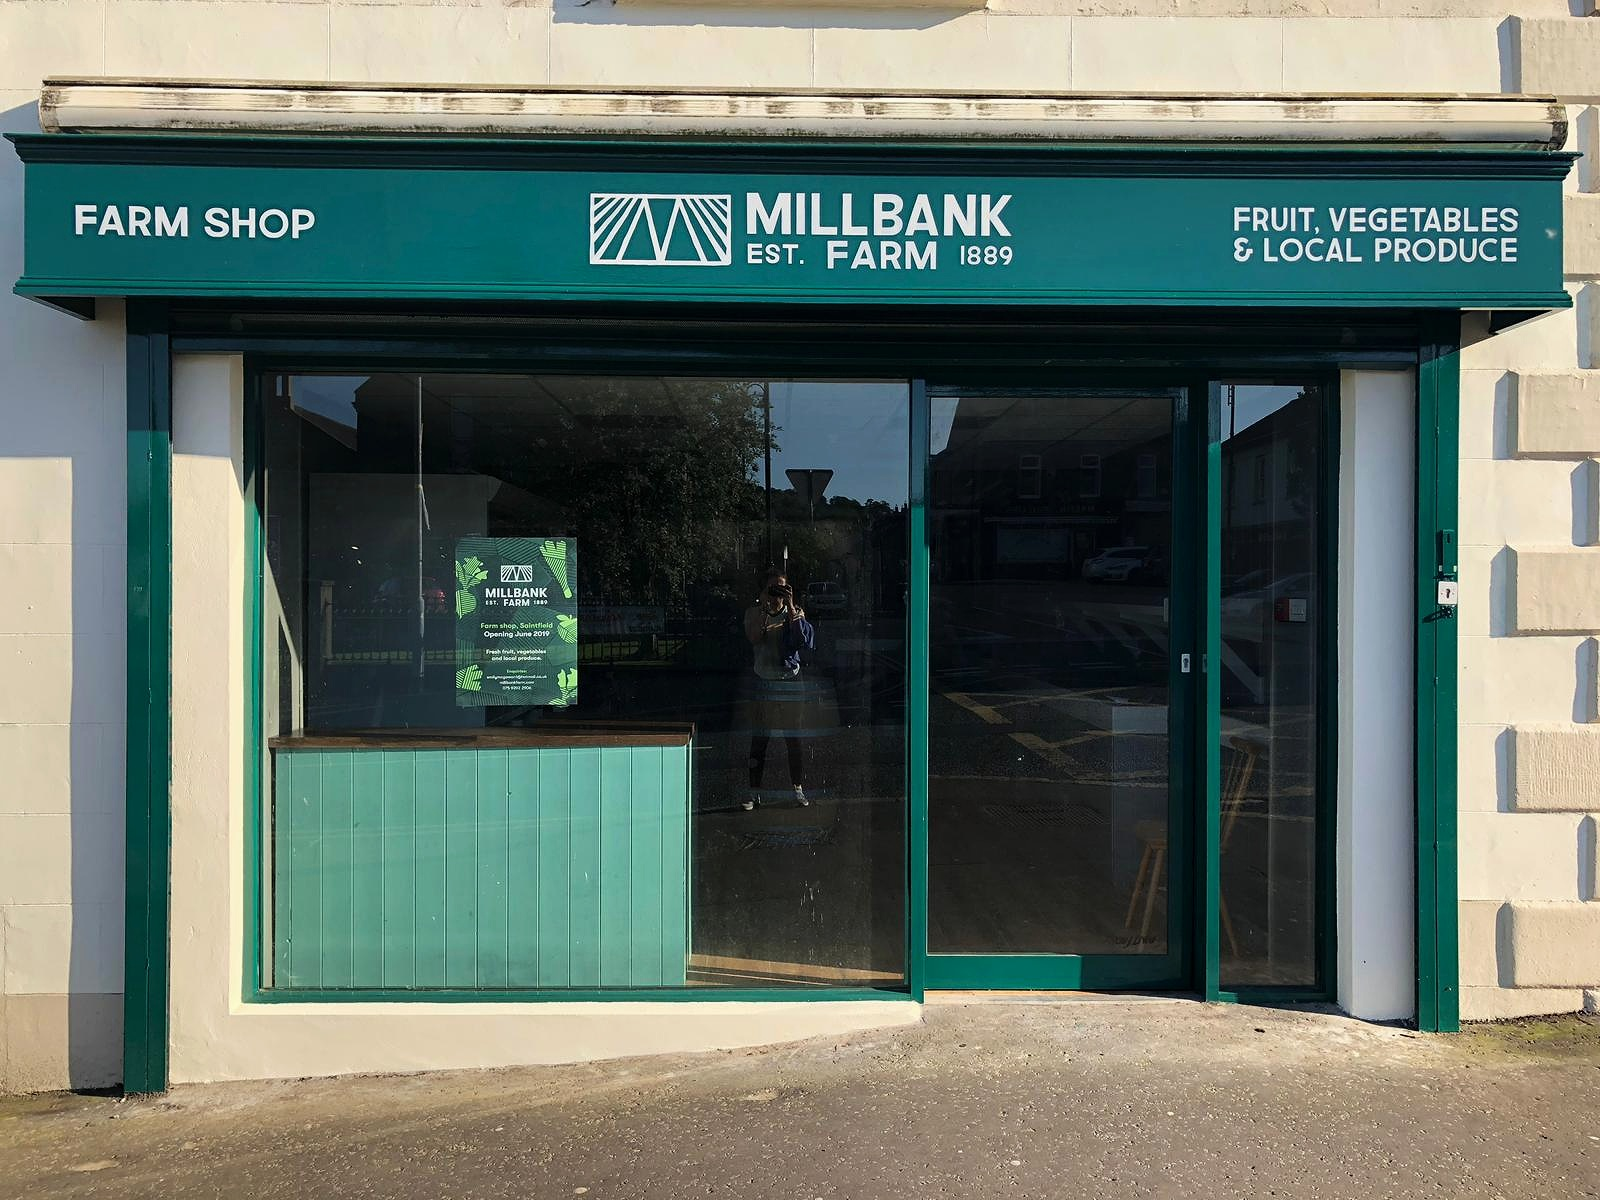 Fresh food from the heart of Saintfield. - Millbank Farm shop offers quality local fruit and vegetables, as well as a the first 'No Waste Station' in Northern Ireland – allowing customers to buy loose whole foods and reduce their packaging use.